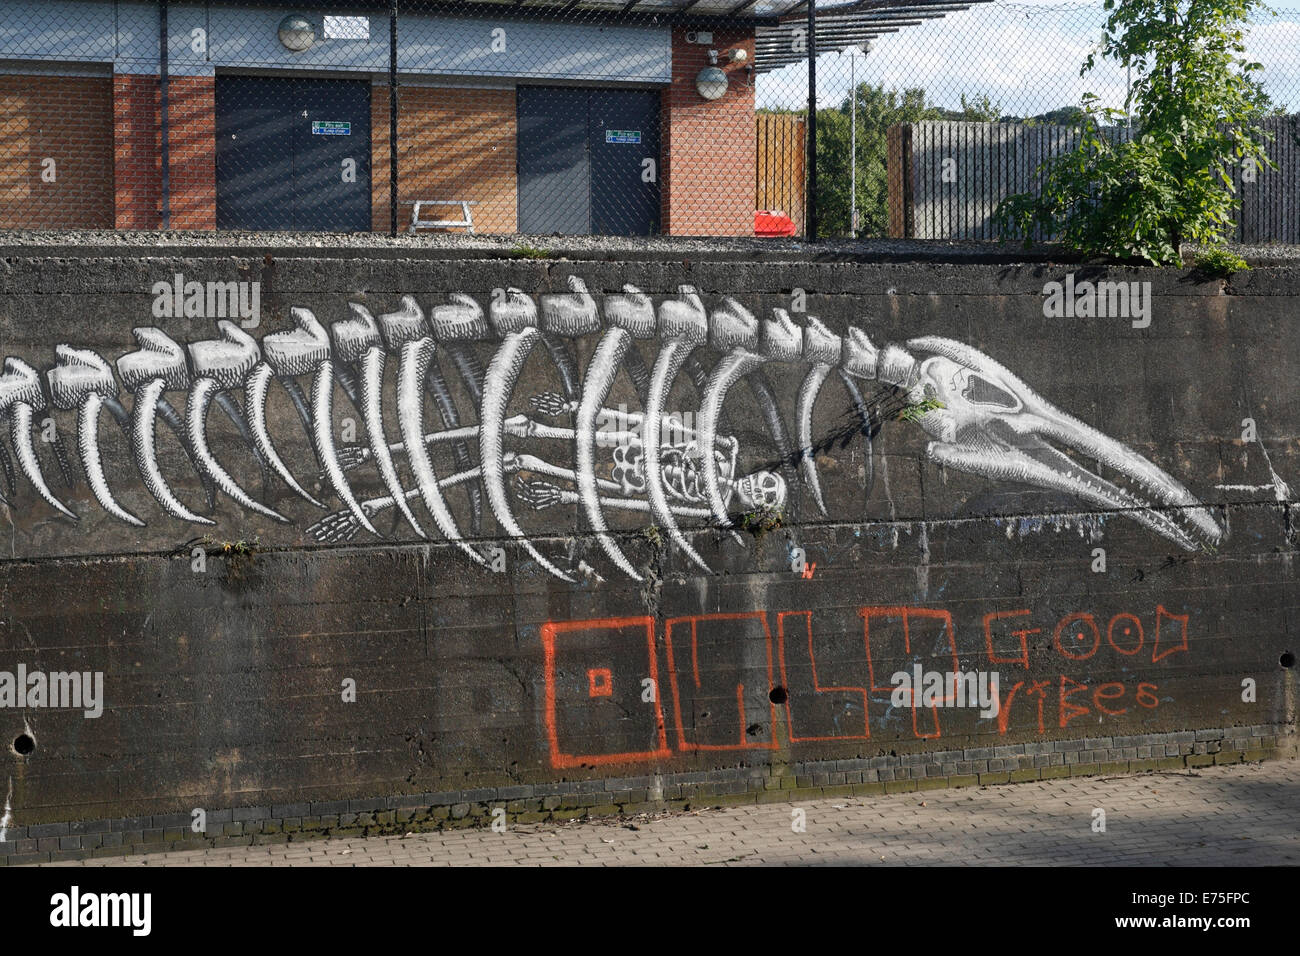 Artwork by Phlegm on a wall, River Sheaf, Sheffield - Stock Image